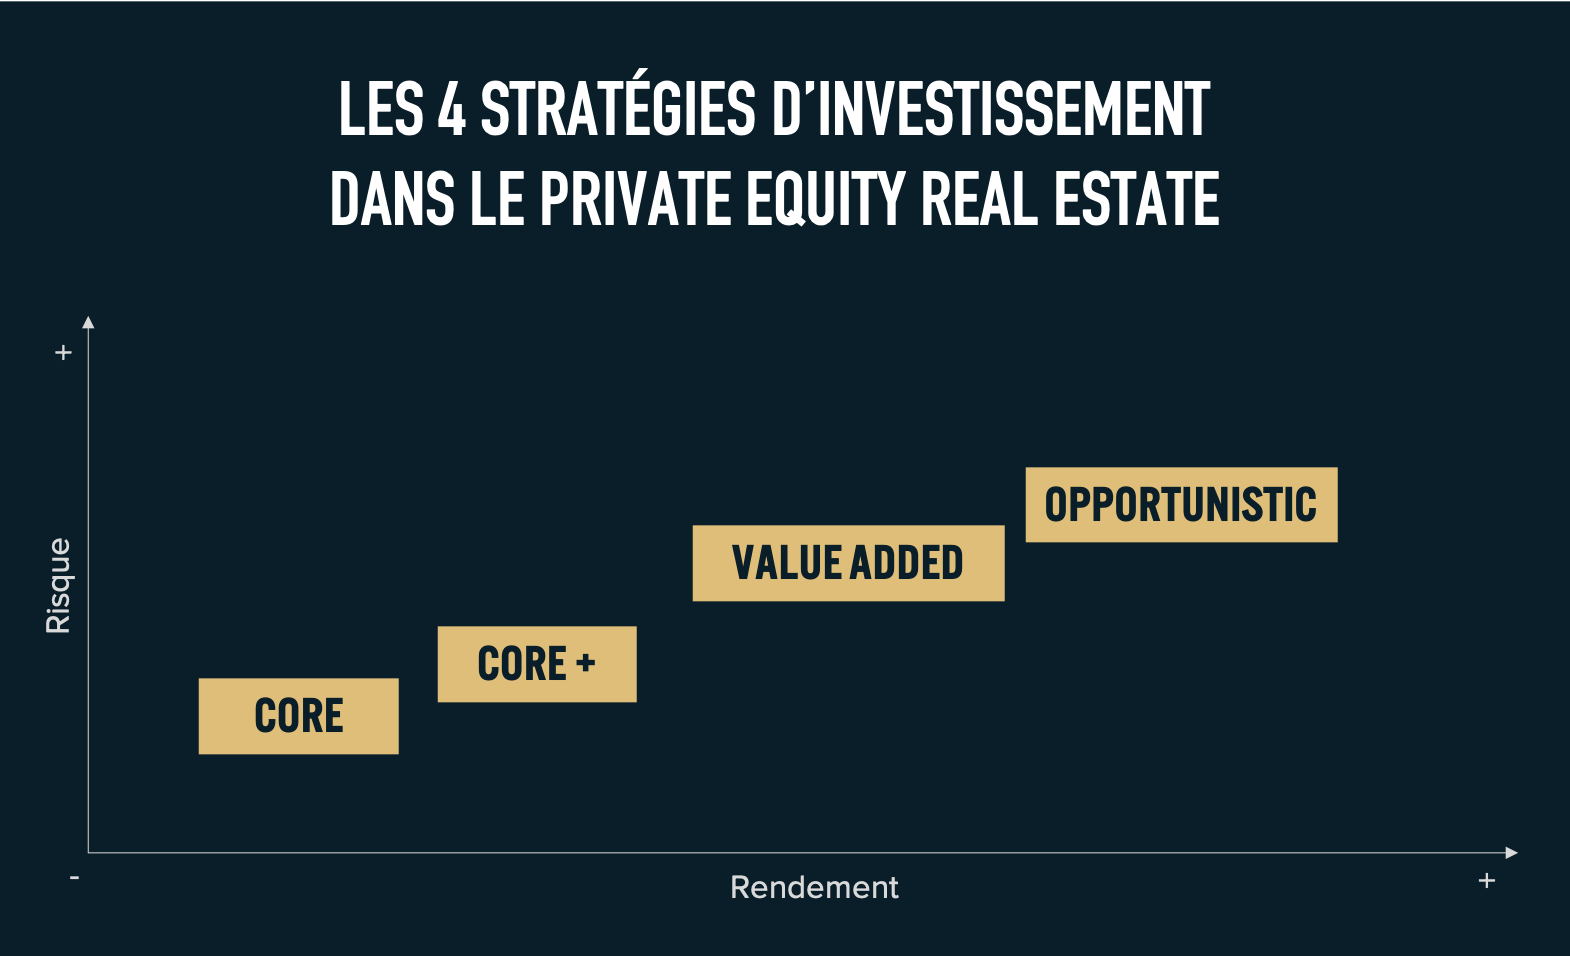 Stratégies d'investissement dans le private equity real estate CORE CORE+ VALUE ADDED OPPORTUNISTIC